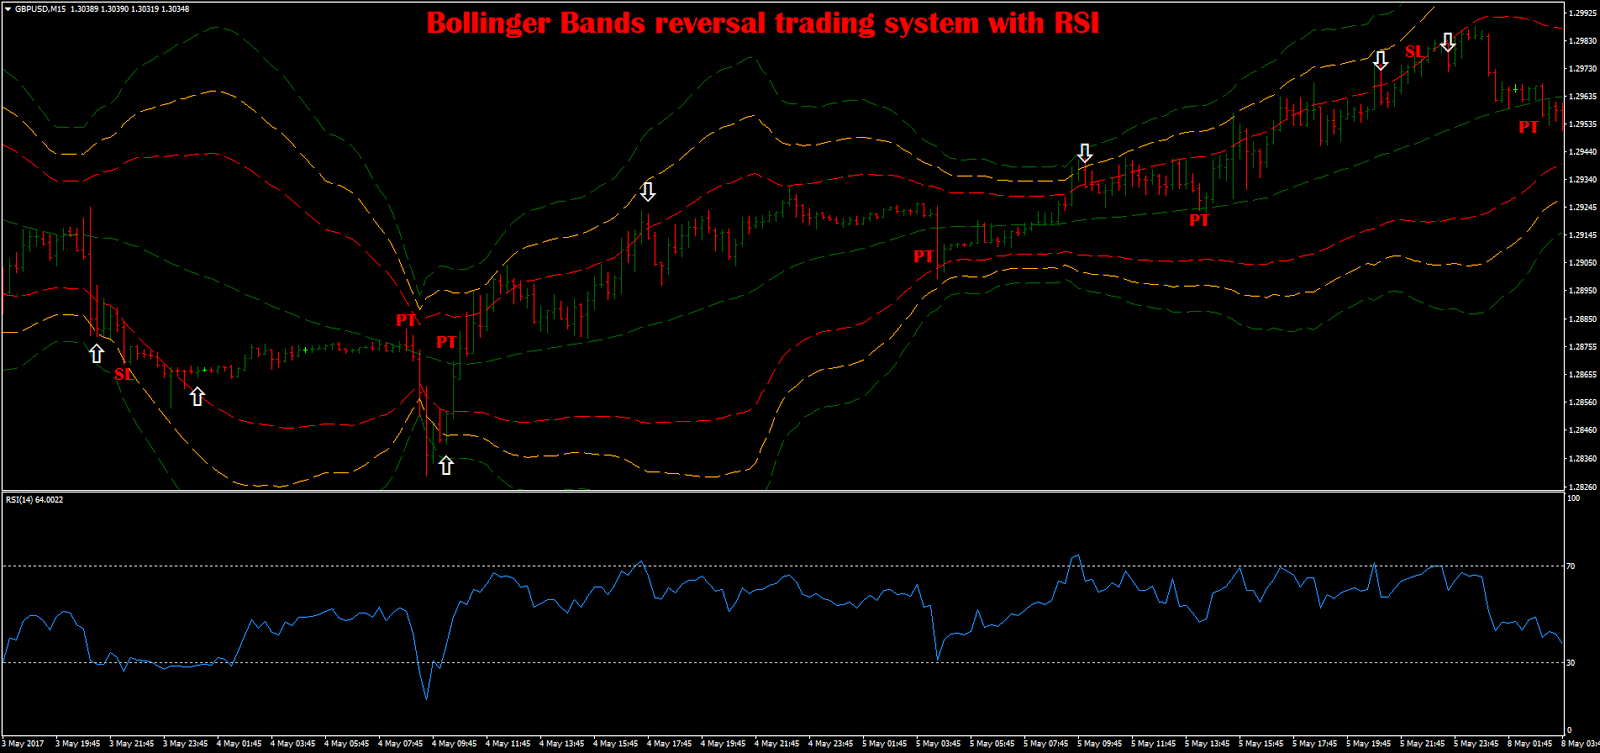 Bollinger band width trading system